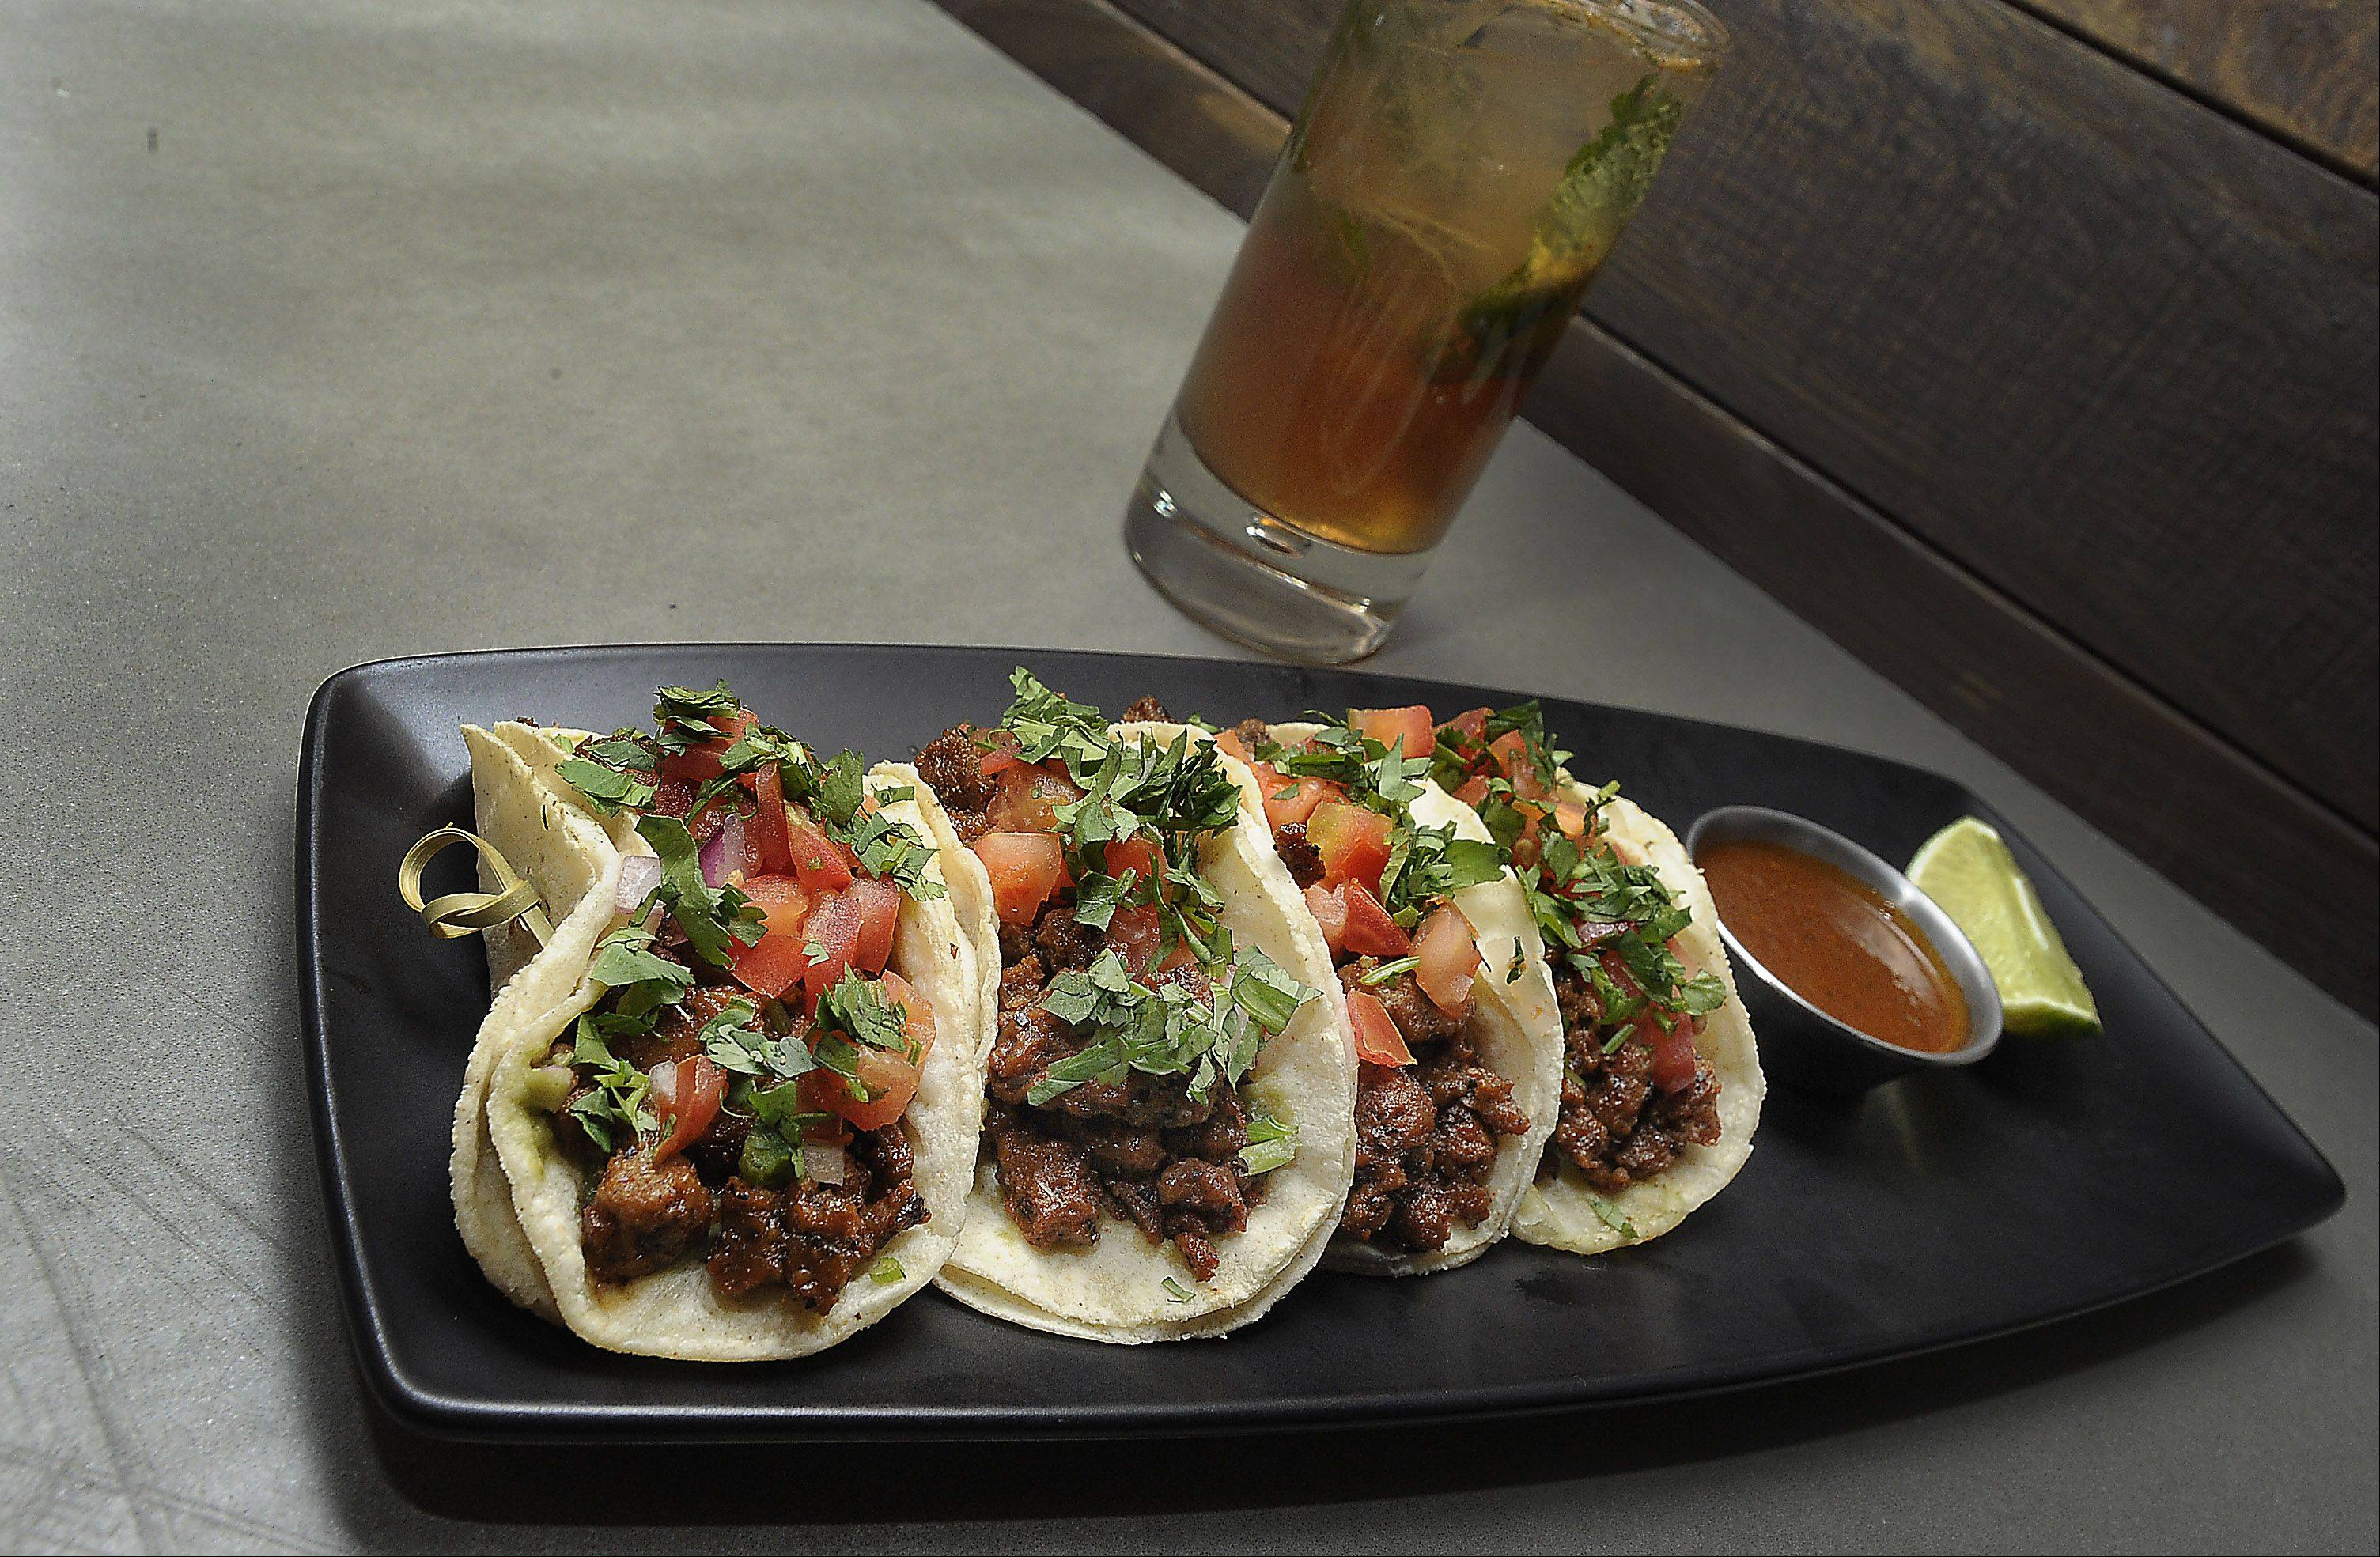 Prasino's chorizo seitan tacos can be enjoyed as an appetizer or a light meal.